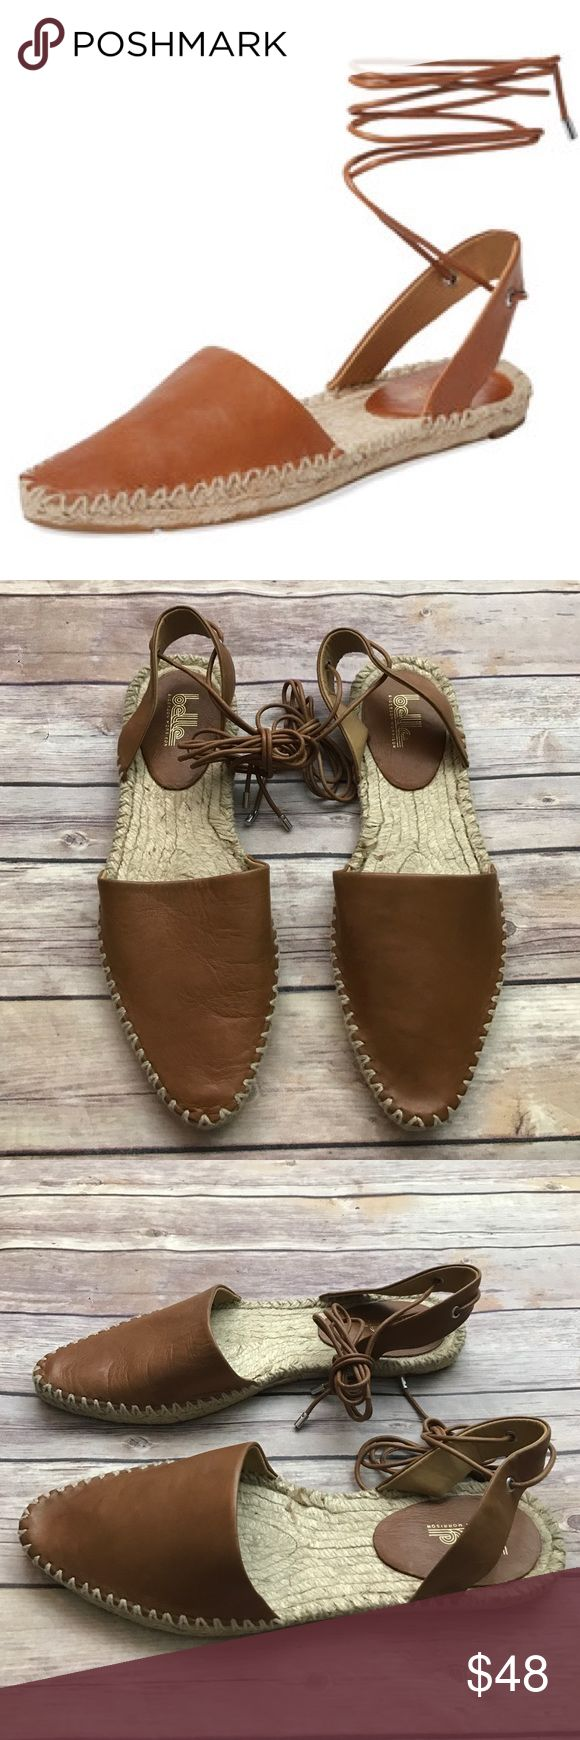 Belle Sigerson Morrison Tan leather espadrilles Leather. New. Belle by Sigerson Morrison Shoes Espadrilles